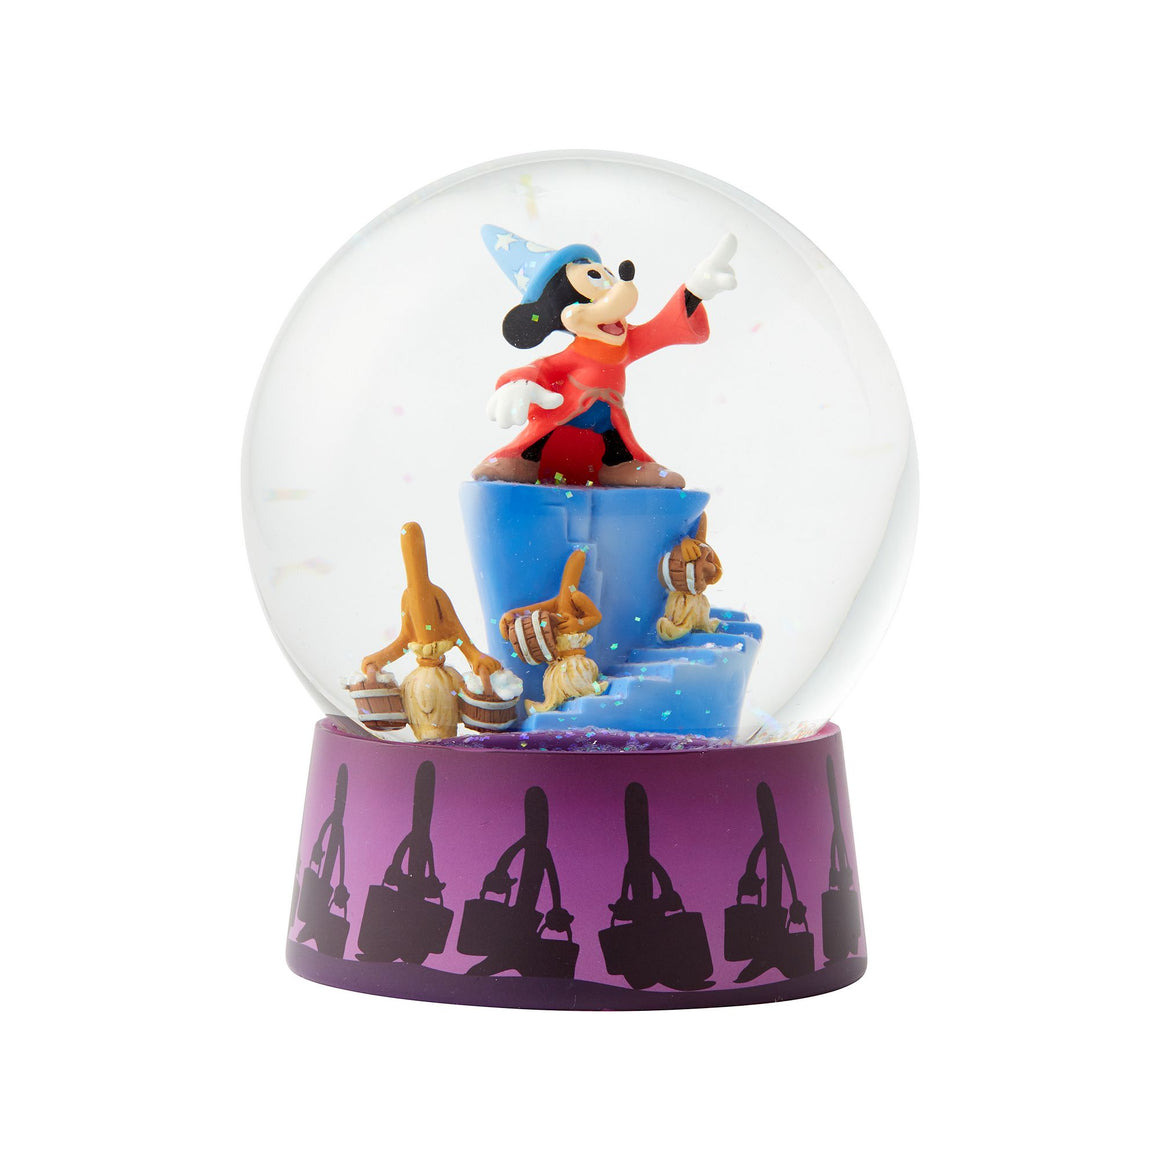 Disney Showcase Fantasia Waterball